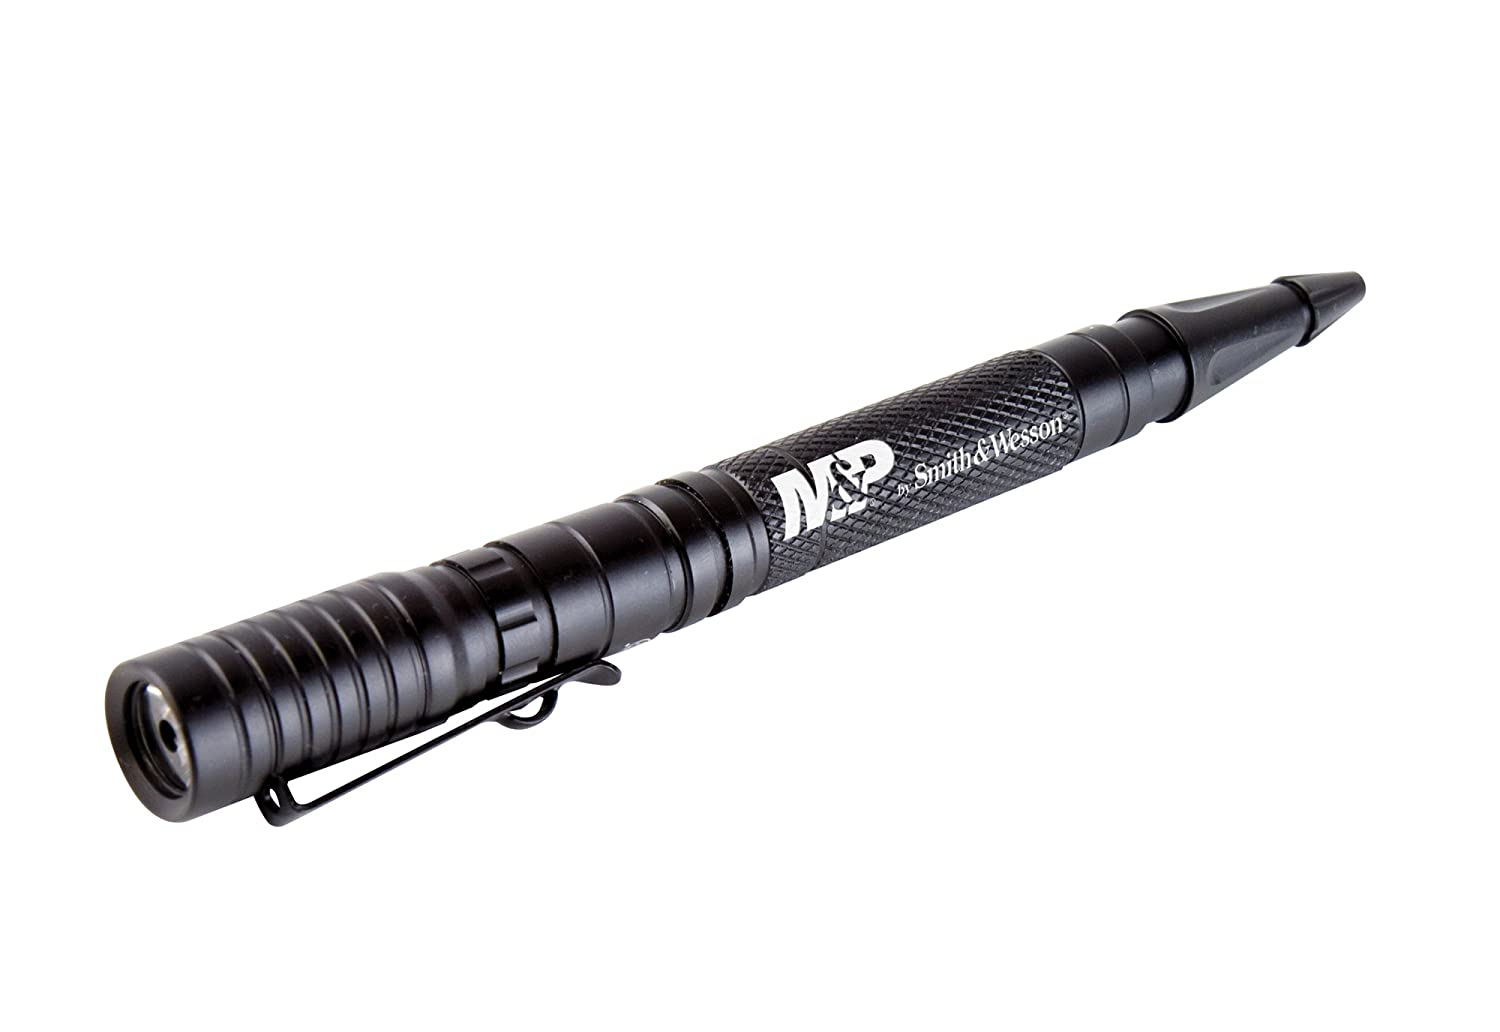 Smith Wesson M P Delta Force PL 10 Aircraft Aluminum Tactical Pen with 105 Lumens Flashlight for Self Defense Outdoor Camping and Everyday Carry